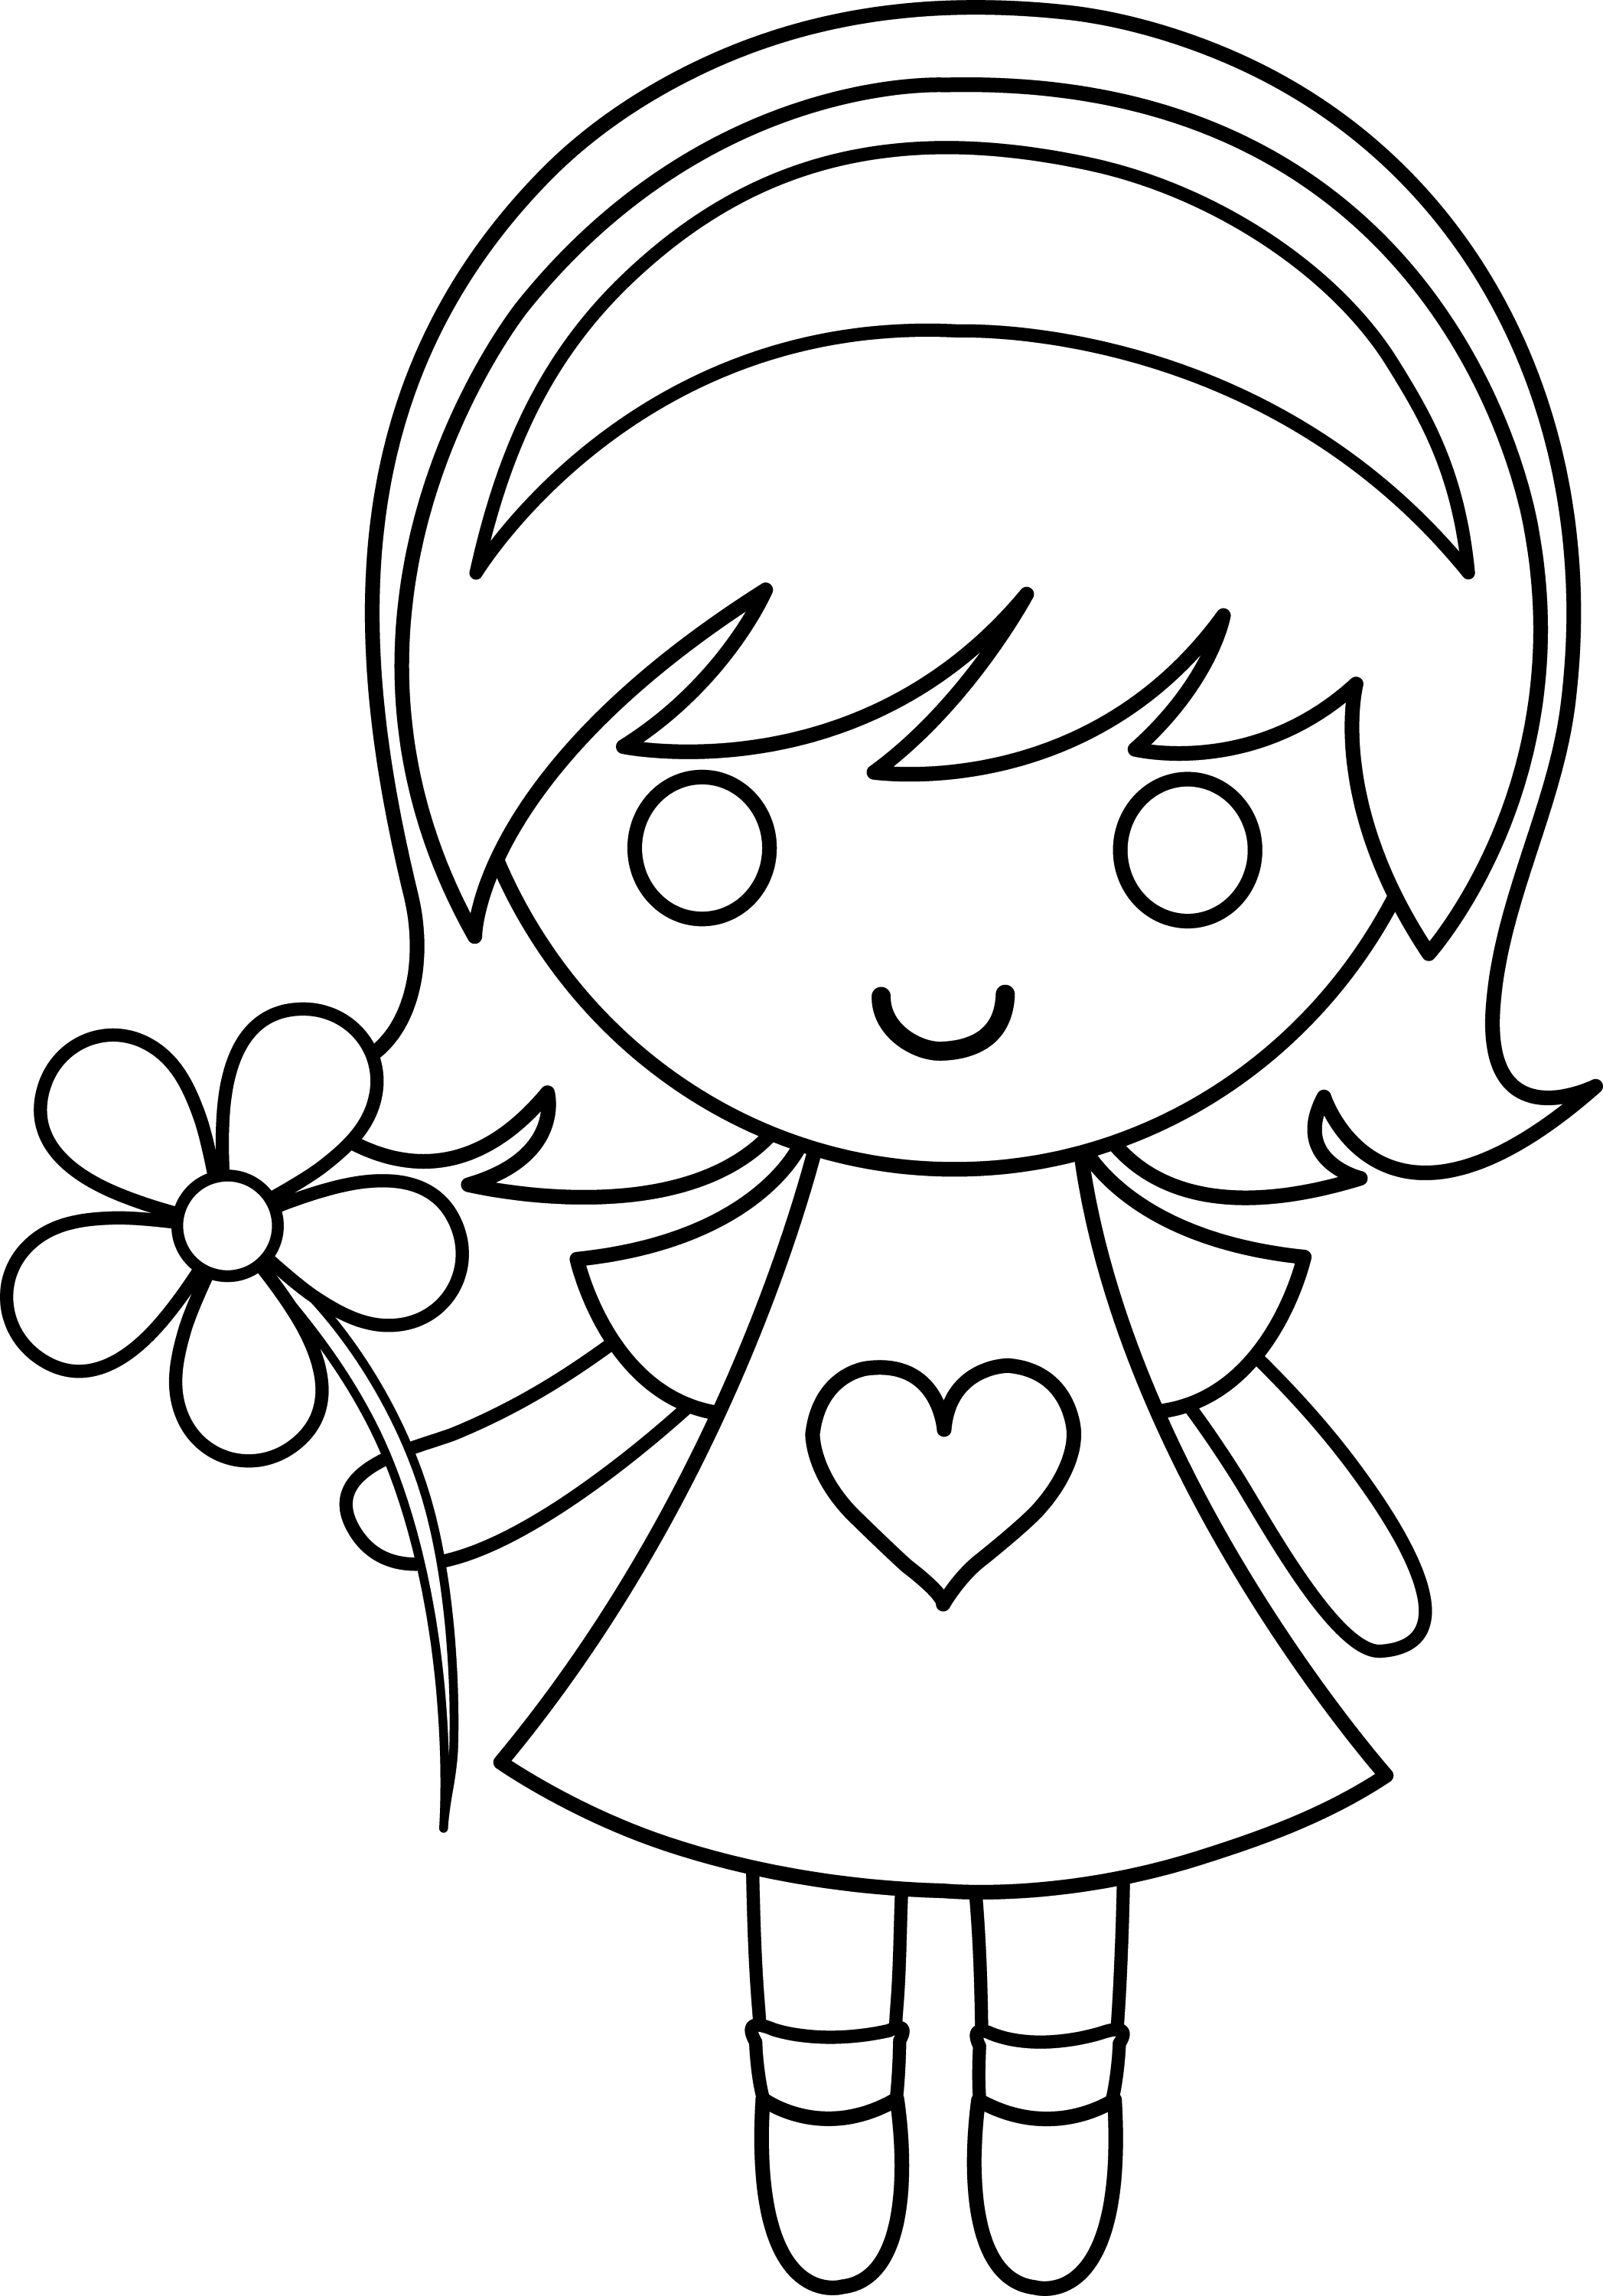 coloring clipart for kids back to school coloring pages best coloring pages for kids for clipart coloring kids